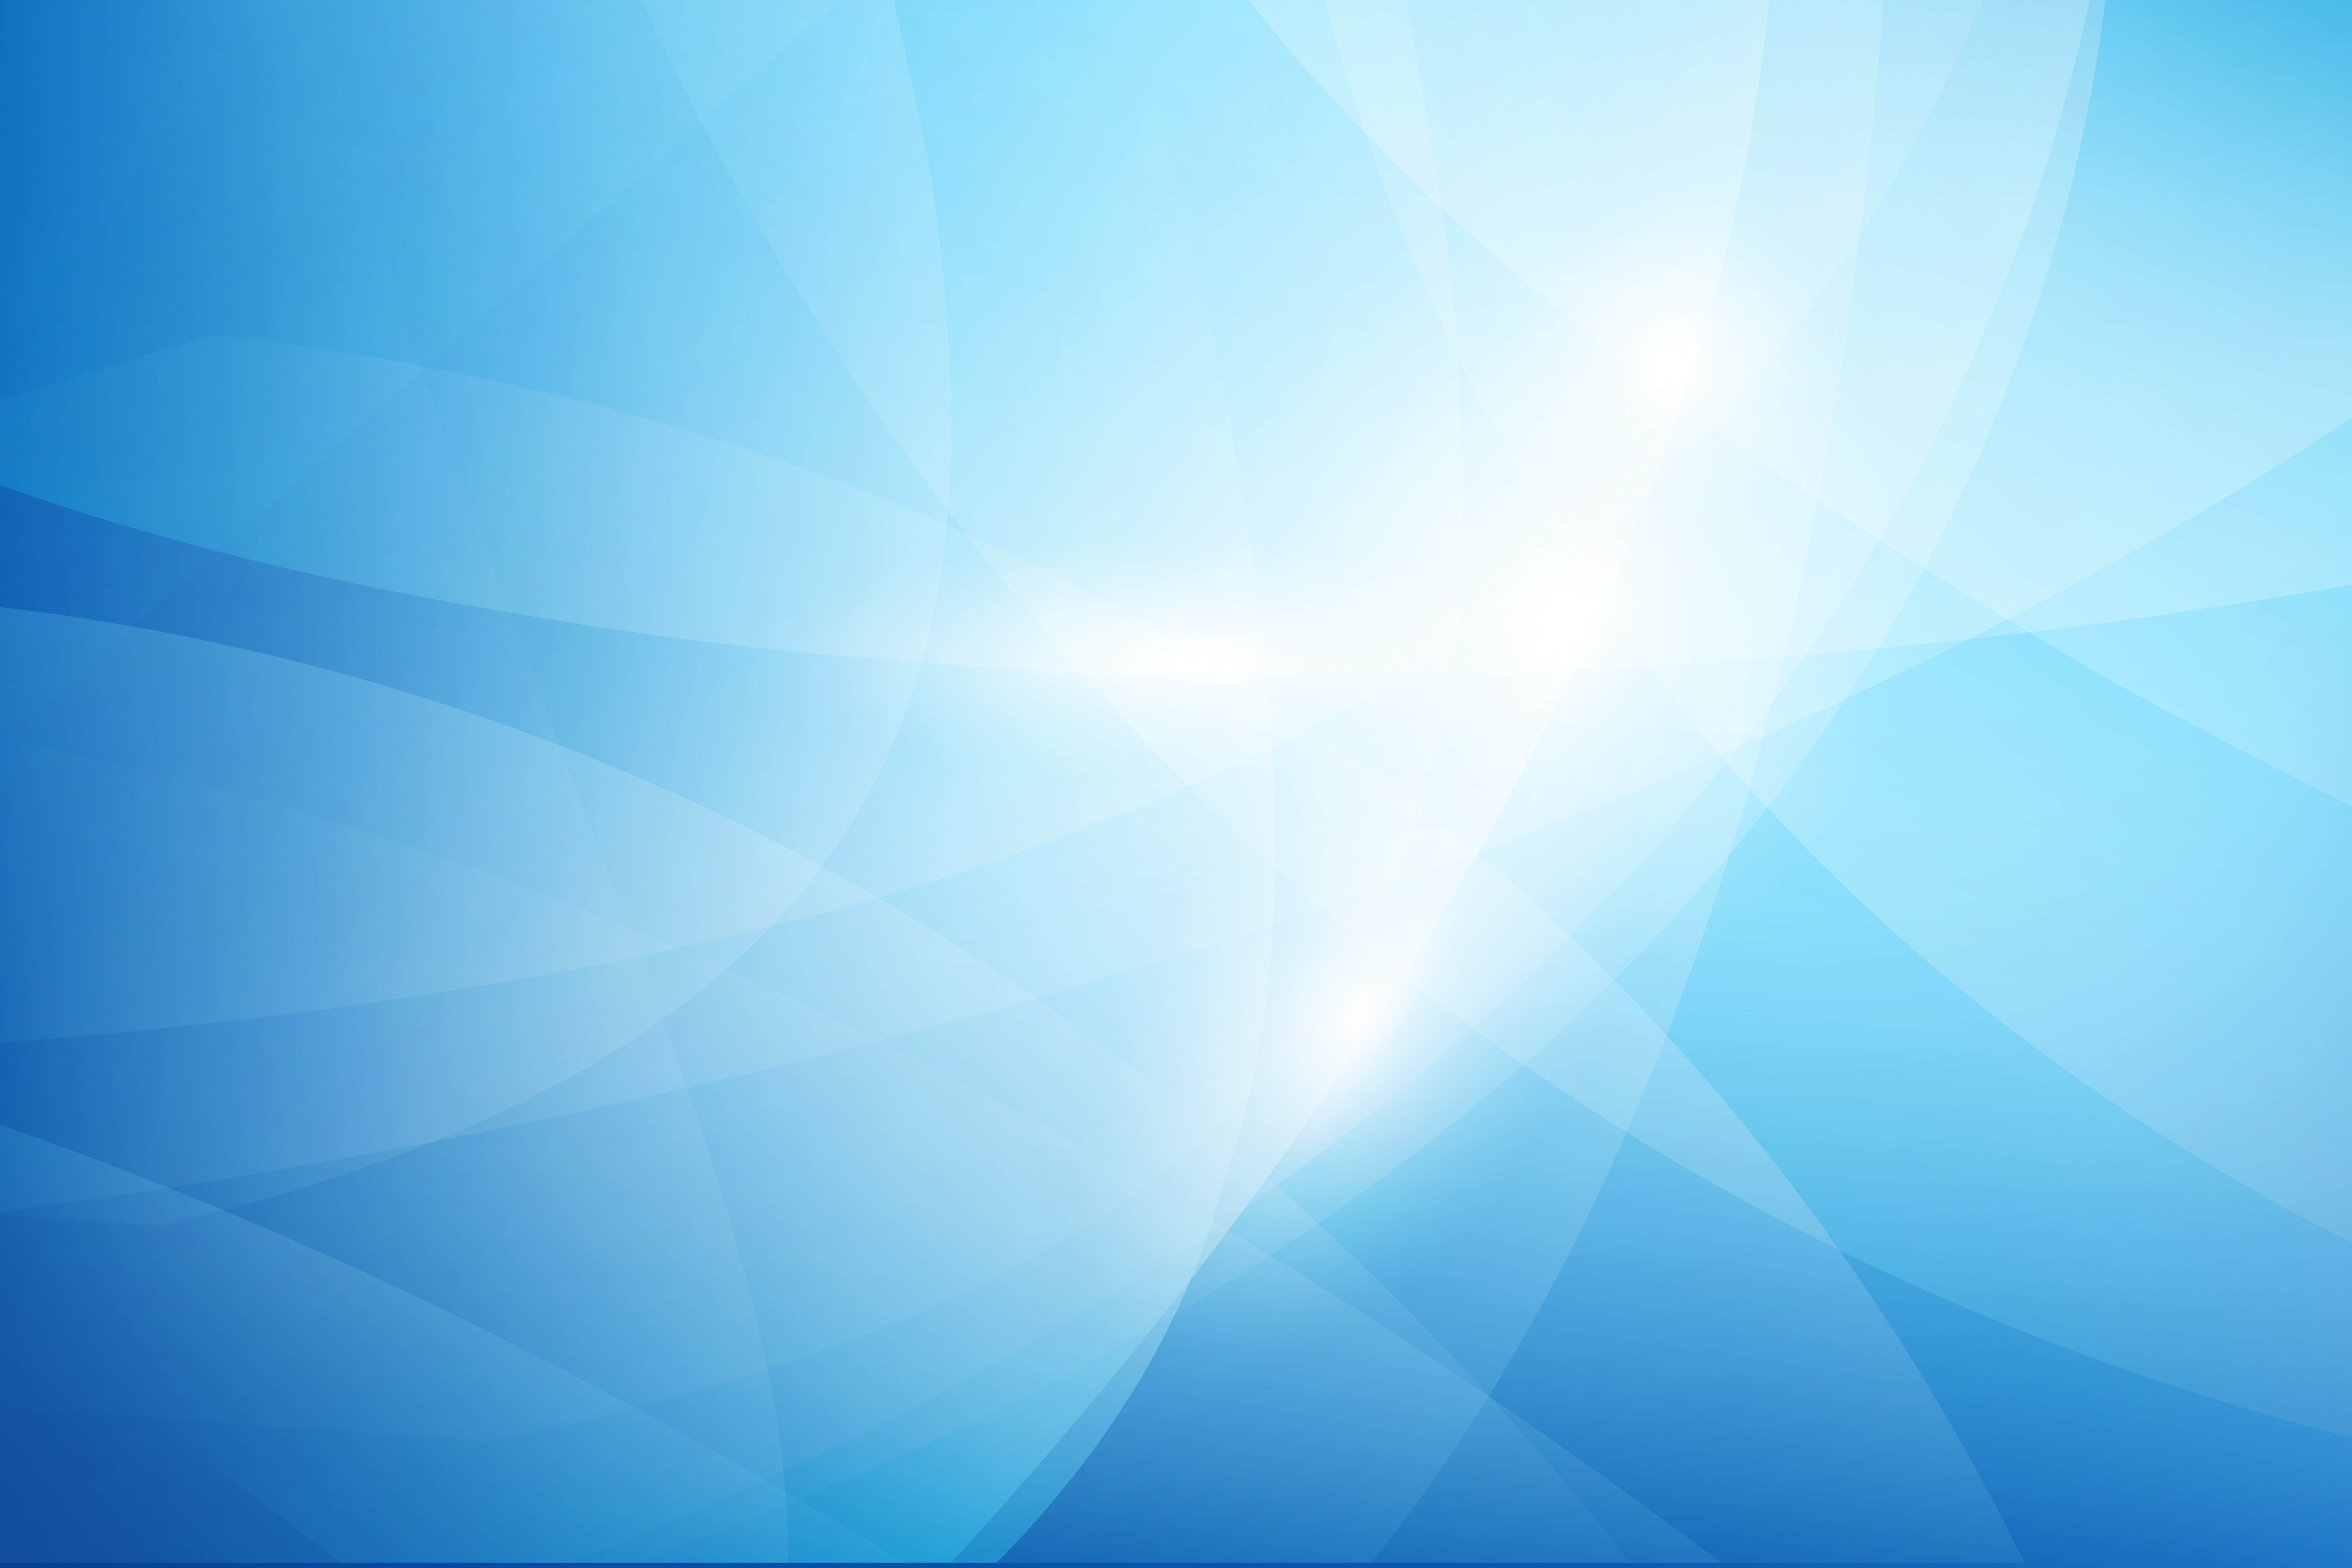 Abstract Blue Background Dark Curve 005 Download Free